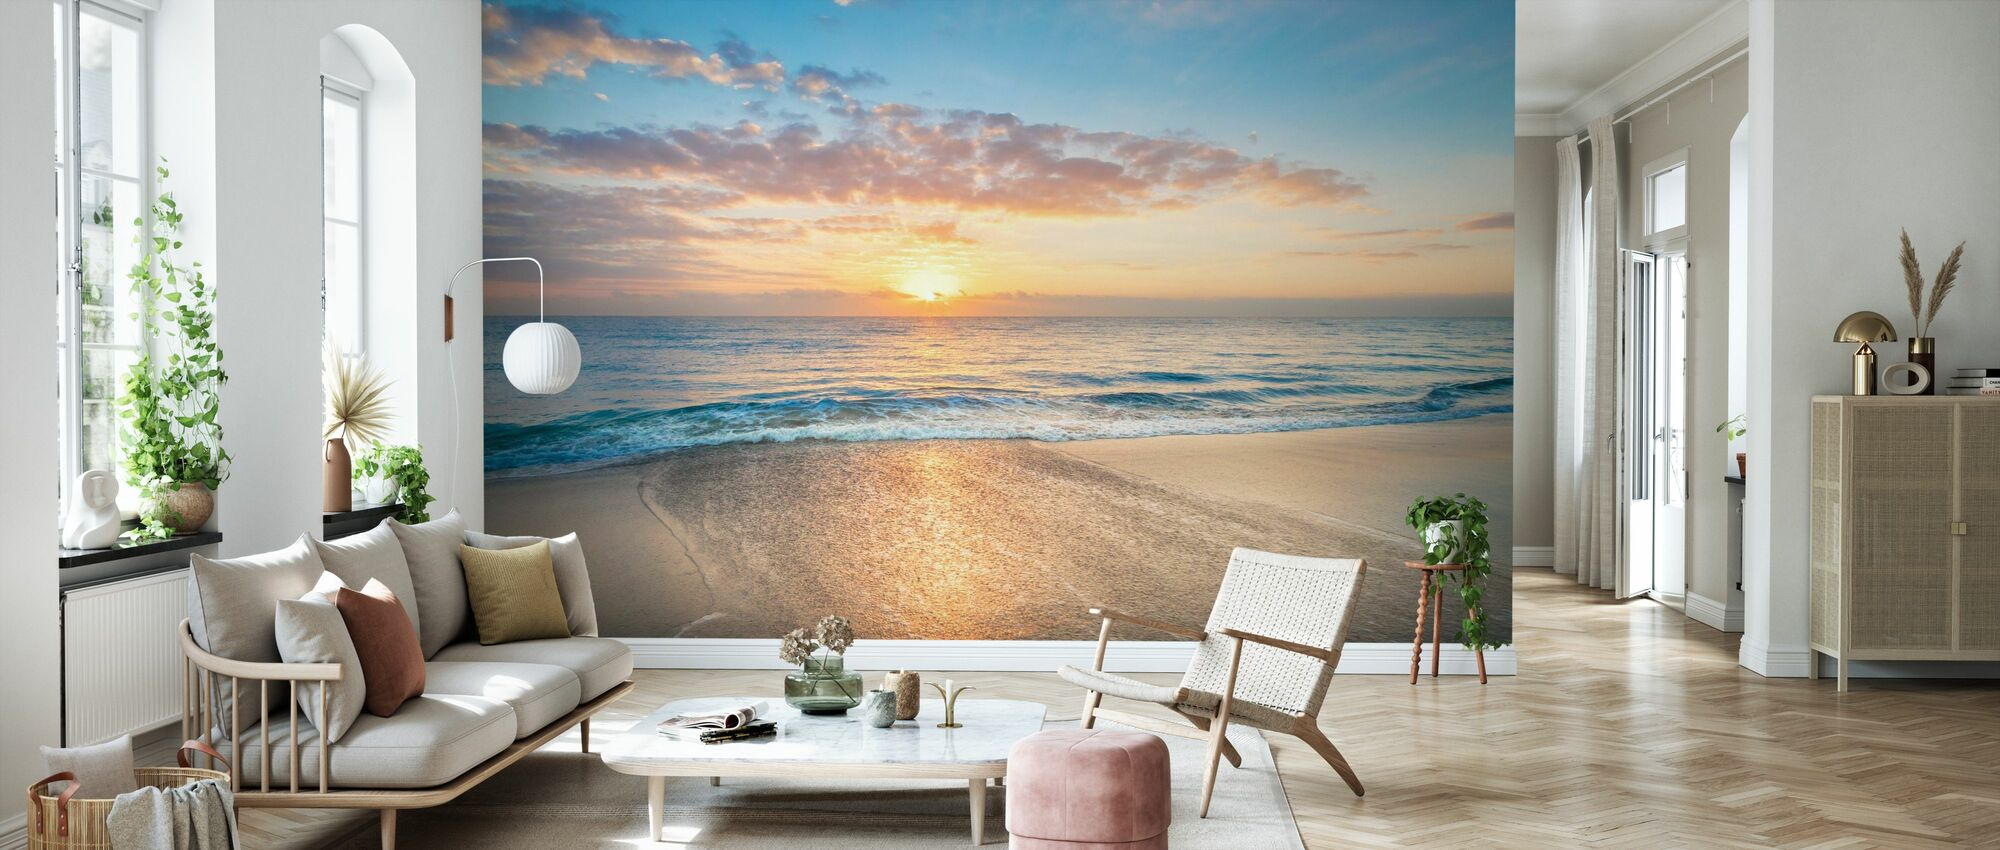 Gentle Waves - Wallpaper - Living Room